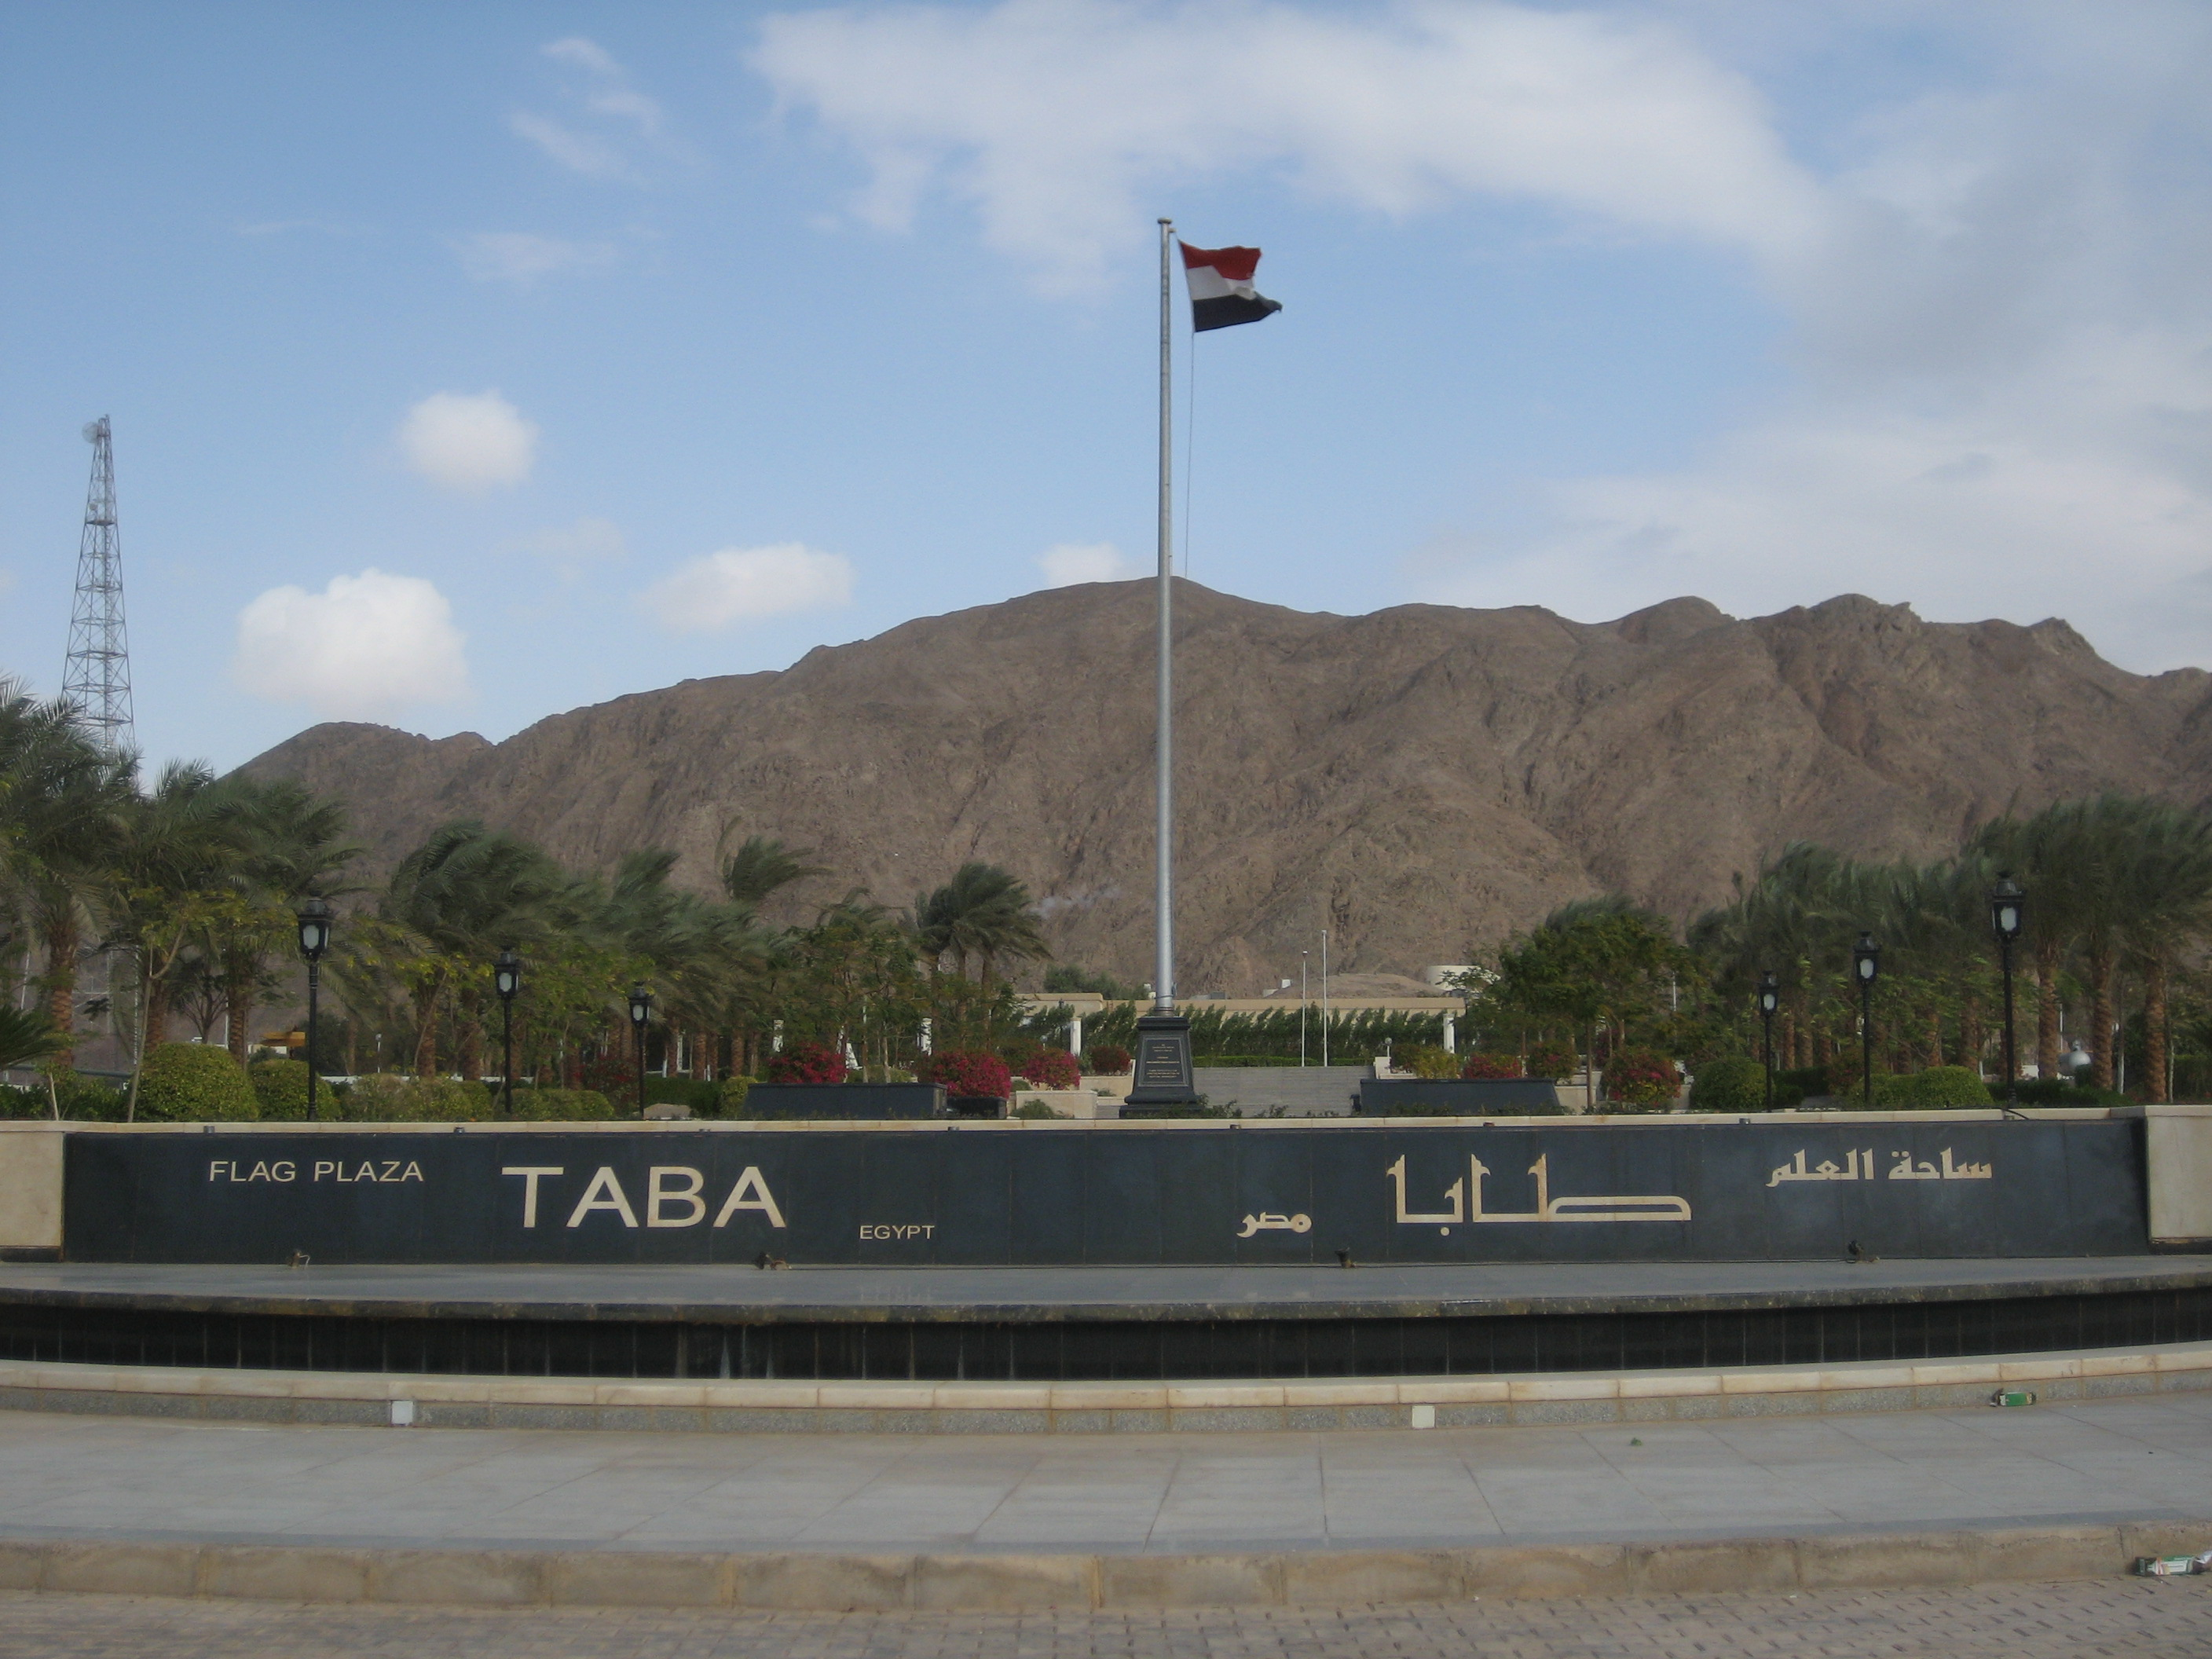 Flag_Plaza_Taba_Egypt